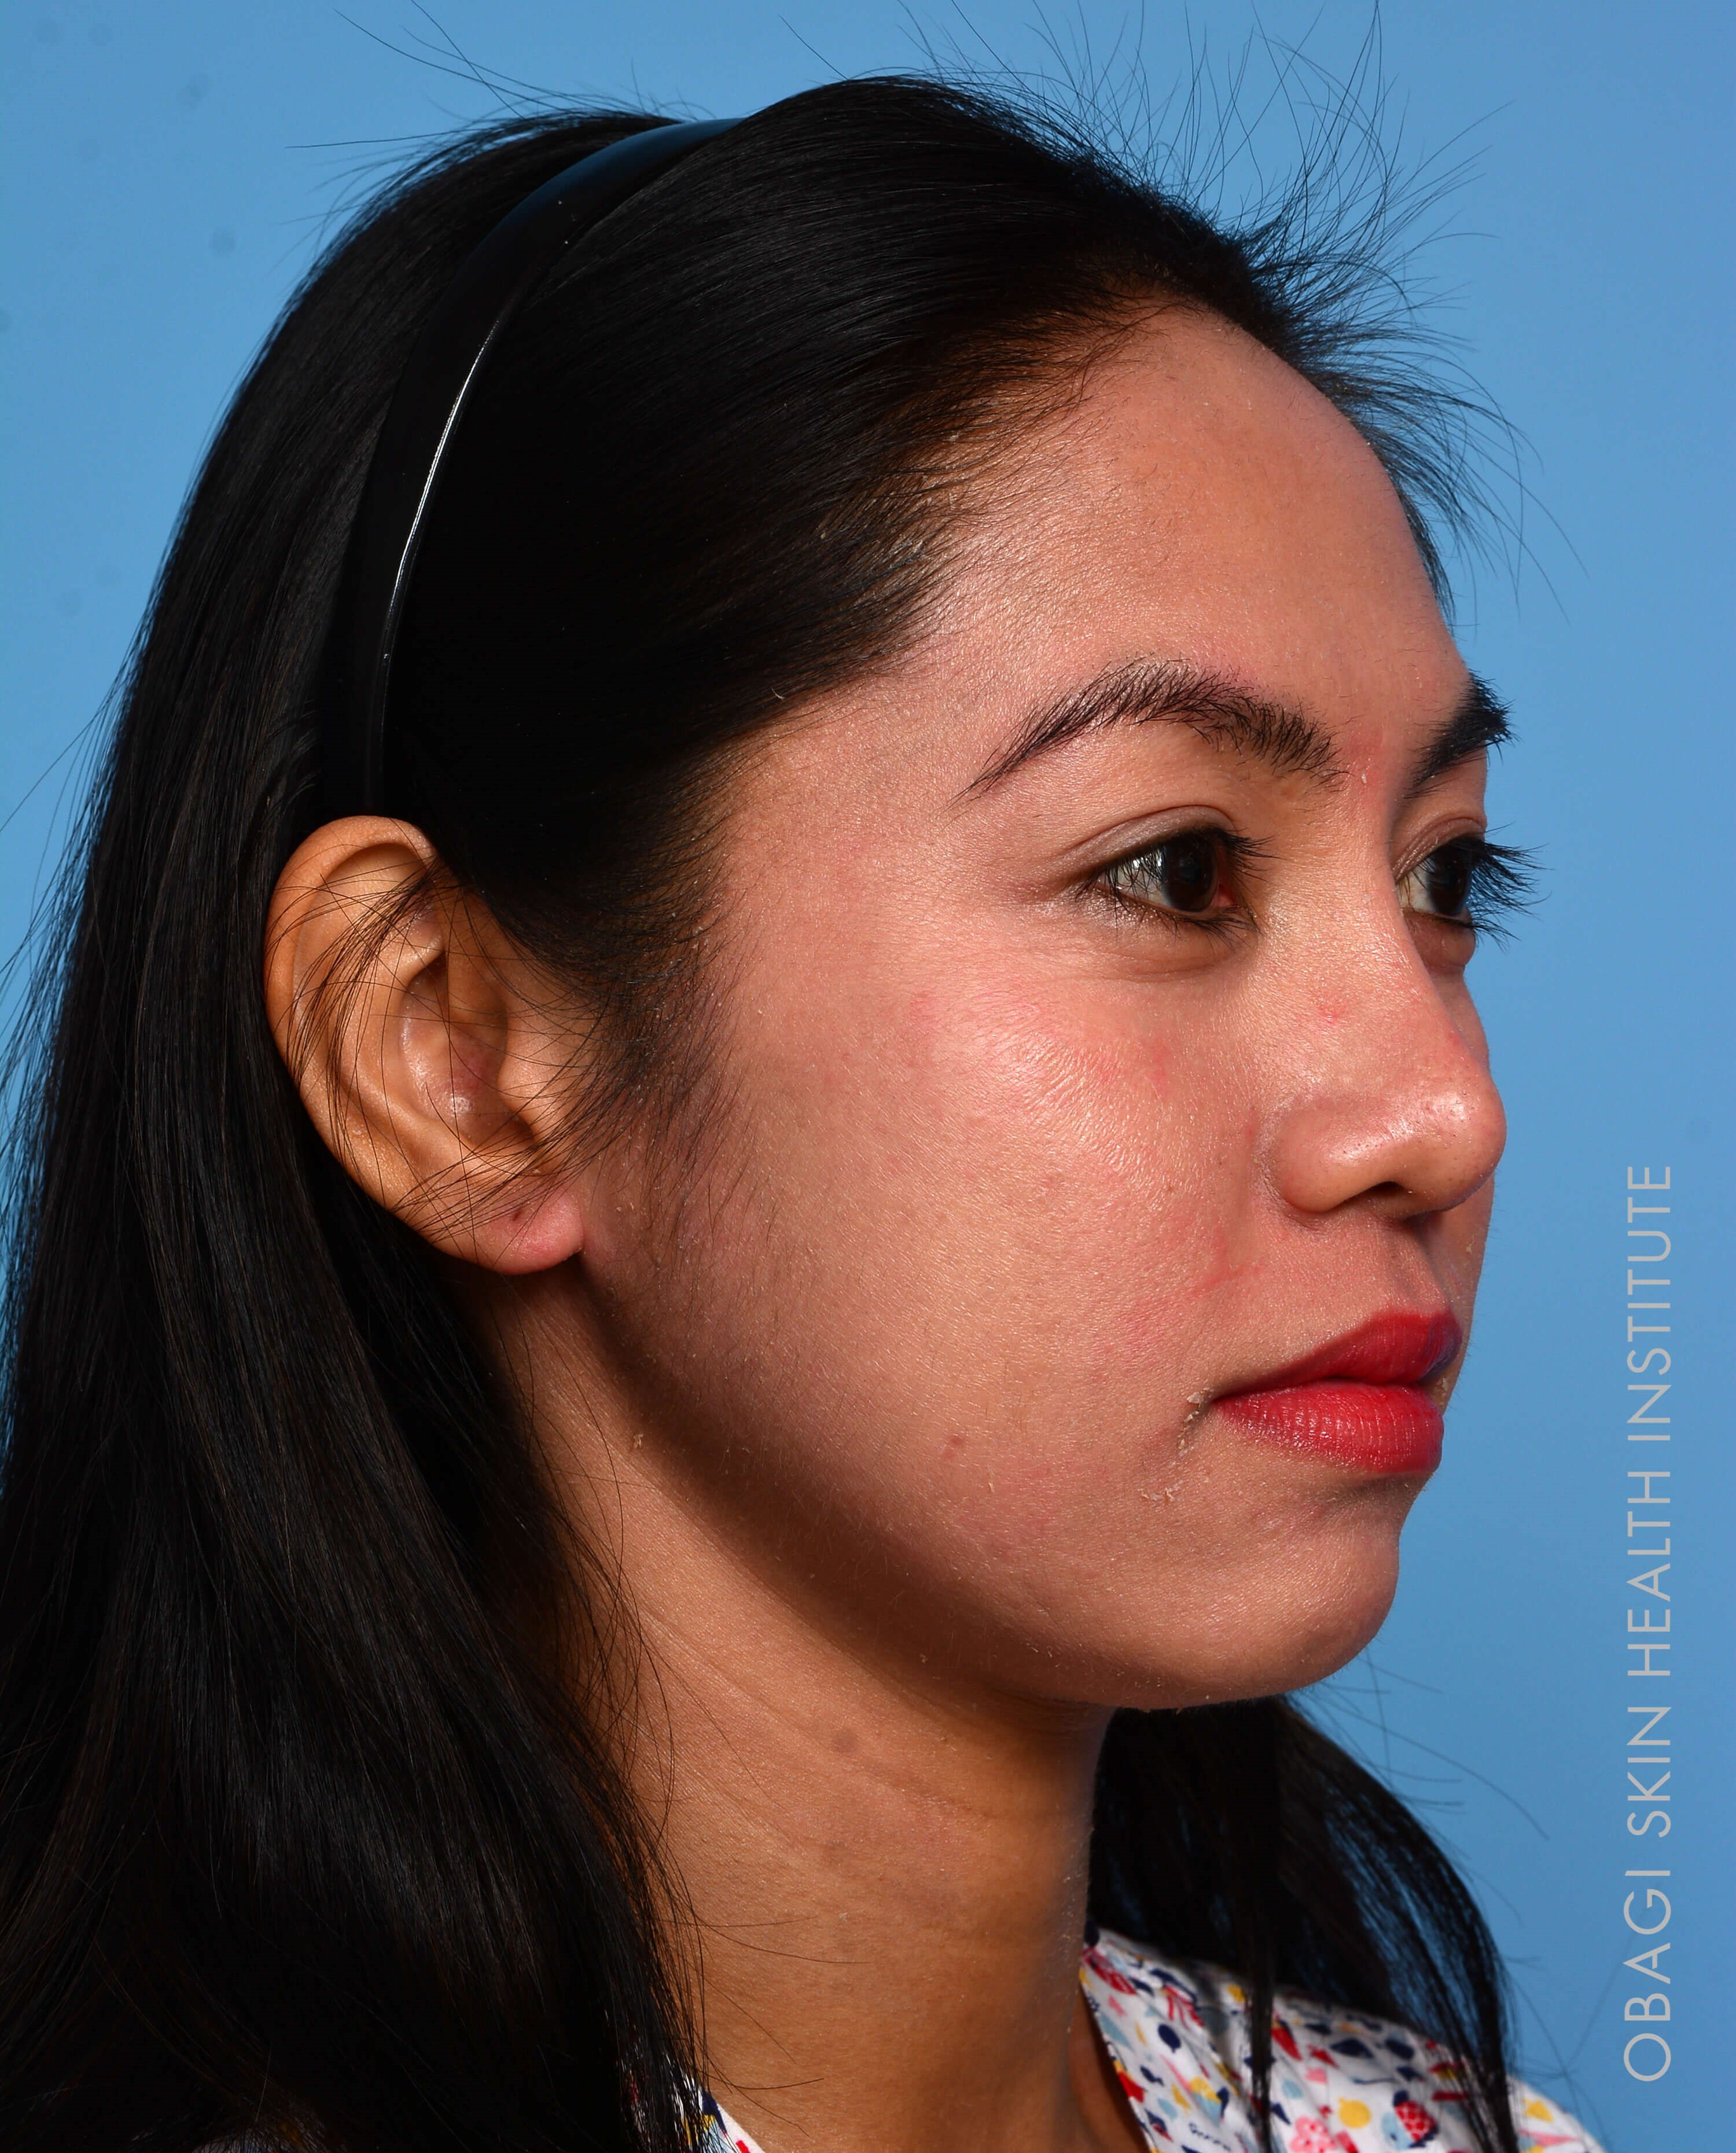 ZO® Custom Peel - Right View After Peel + Laser Treatment